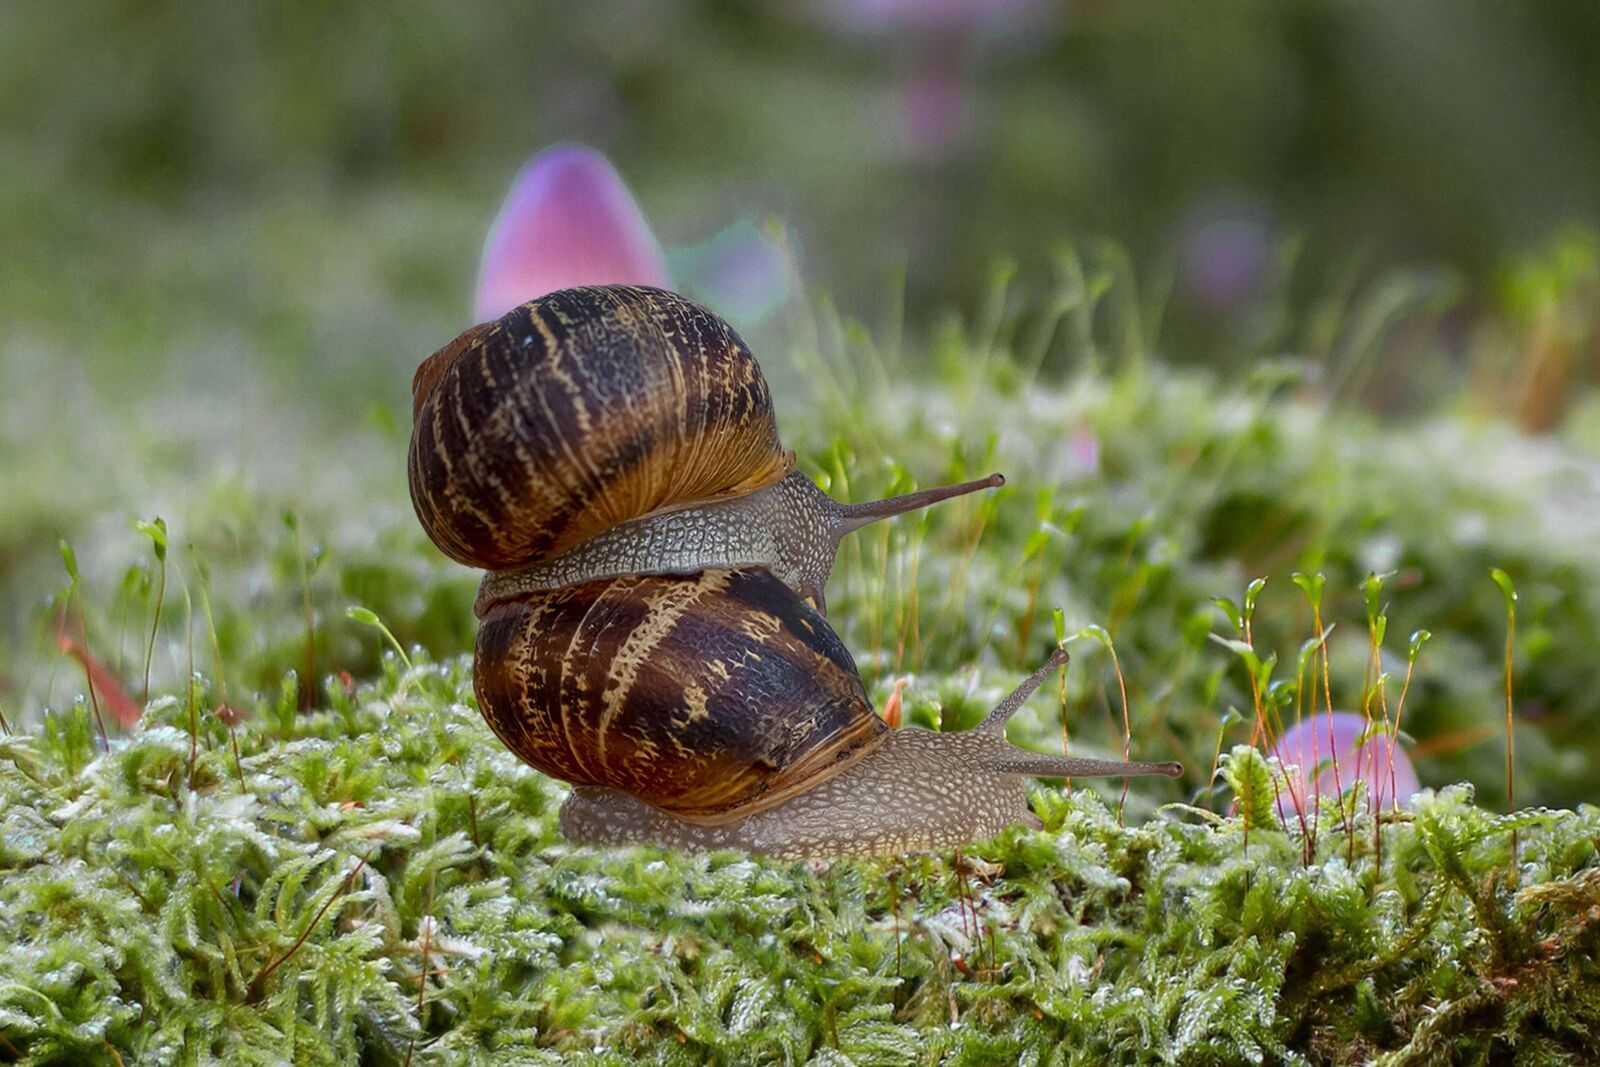 """Canon EOS 7D sample photo. """"Snails, spiral, moss"""" photography"""